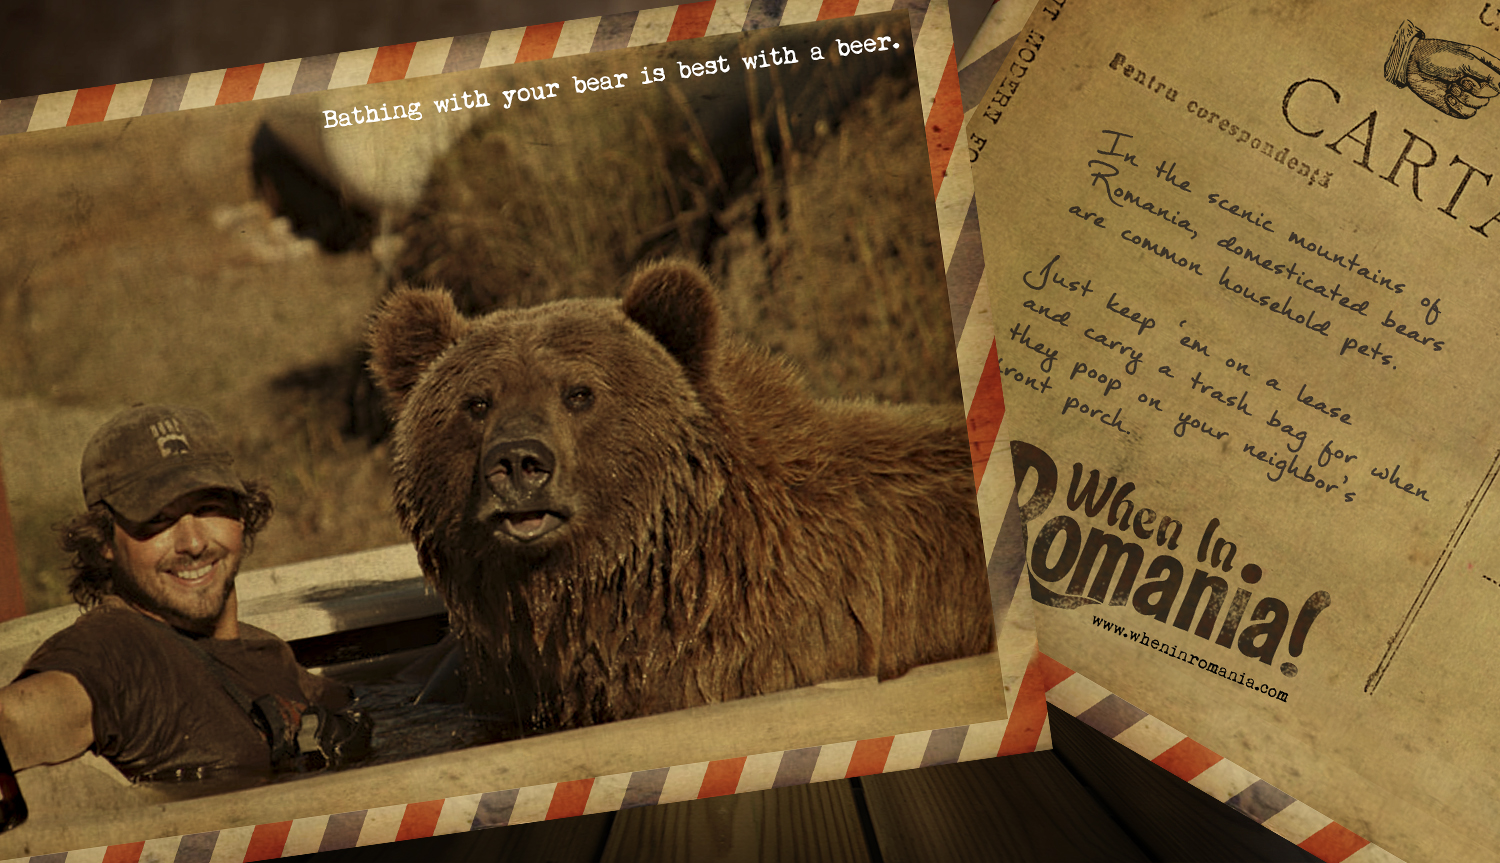 Direct Mail: Postcards